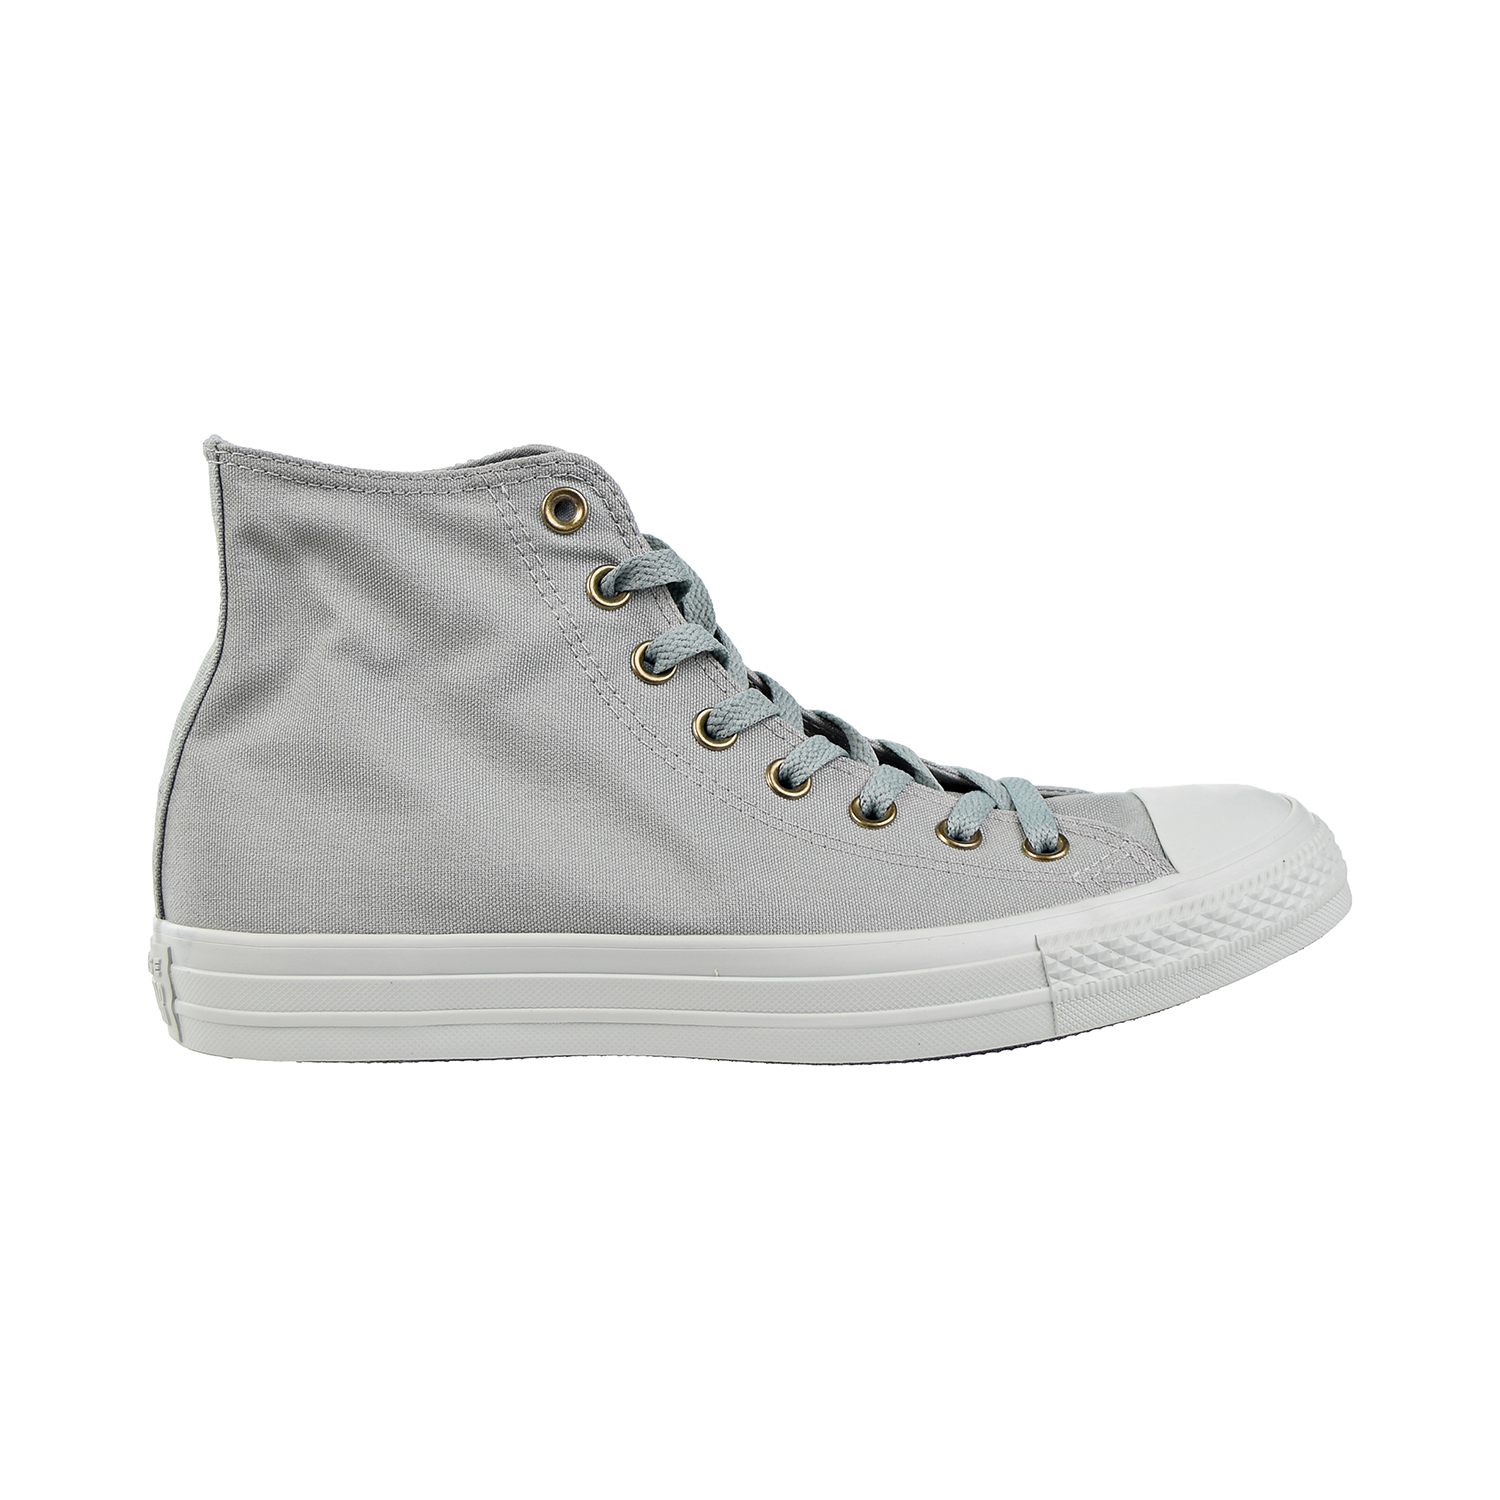 8941590b427 Details about Converse Chuck Taylor All Star Hi Mens Shoes Mica Green/Mica  Green 161484F